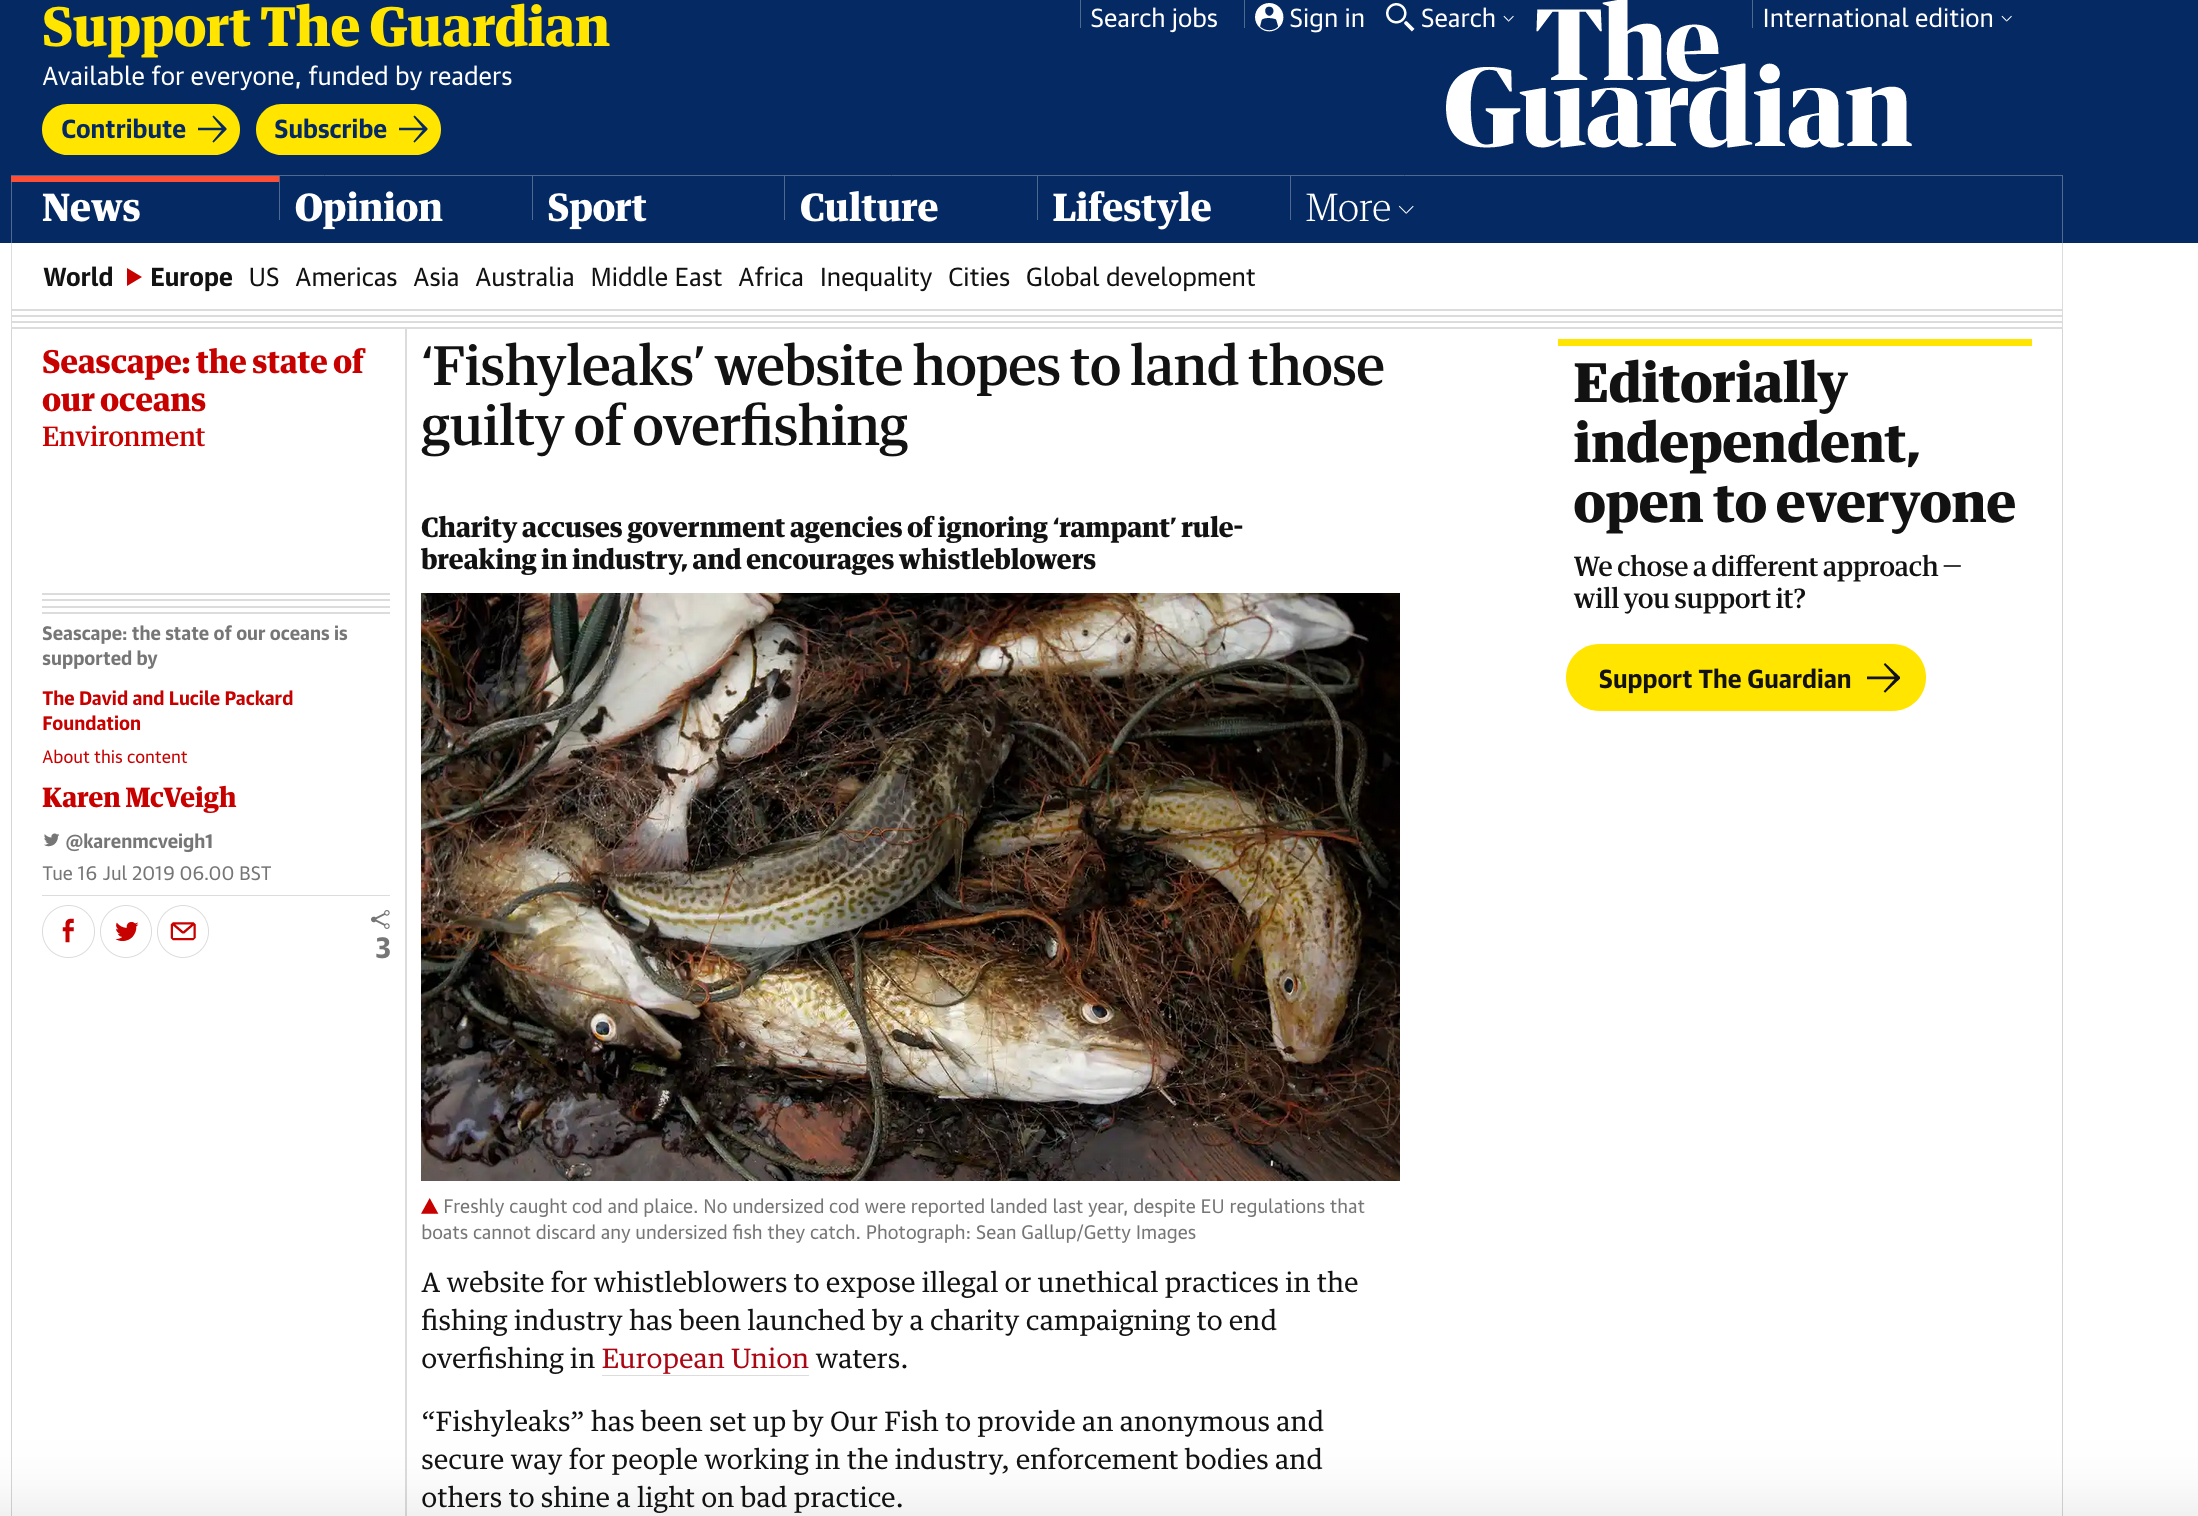 'Fishyleaks' website hopes to land those guilty of overfishing